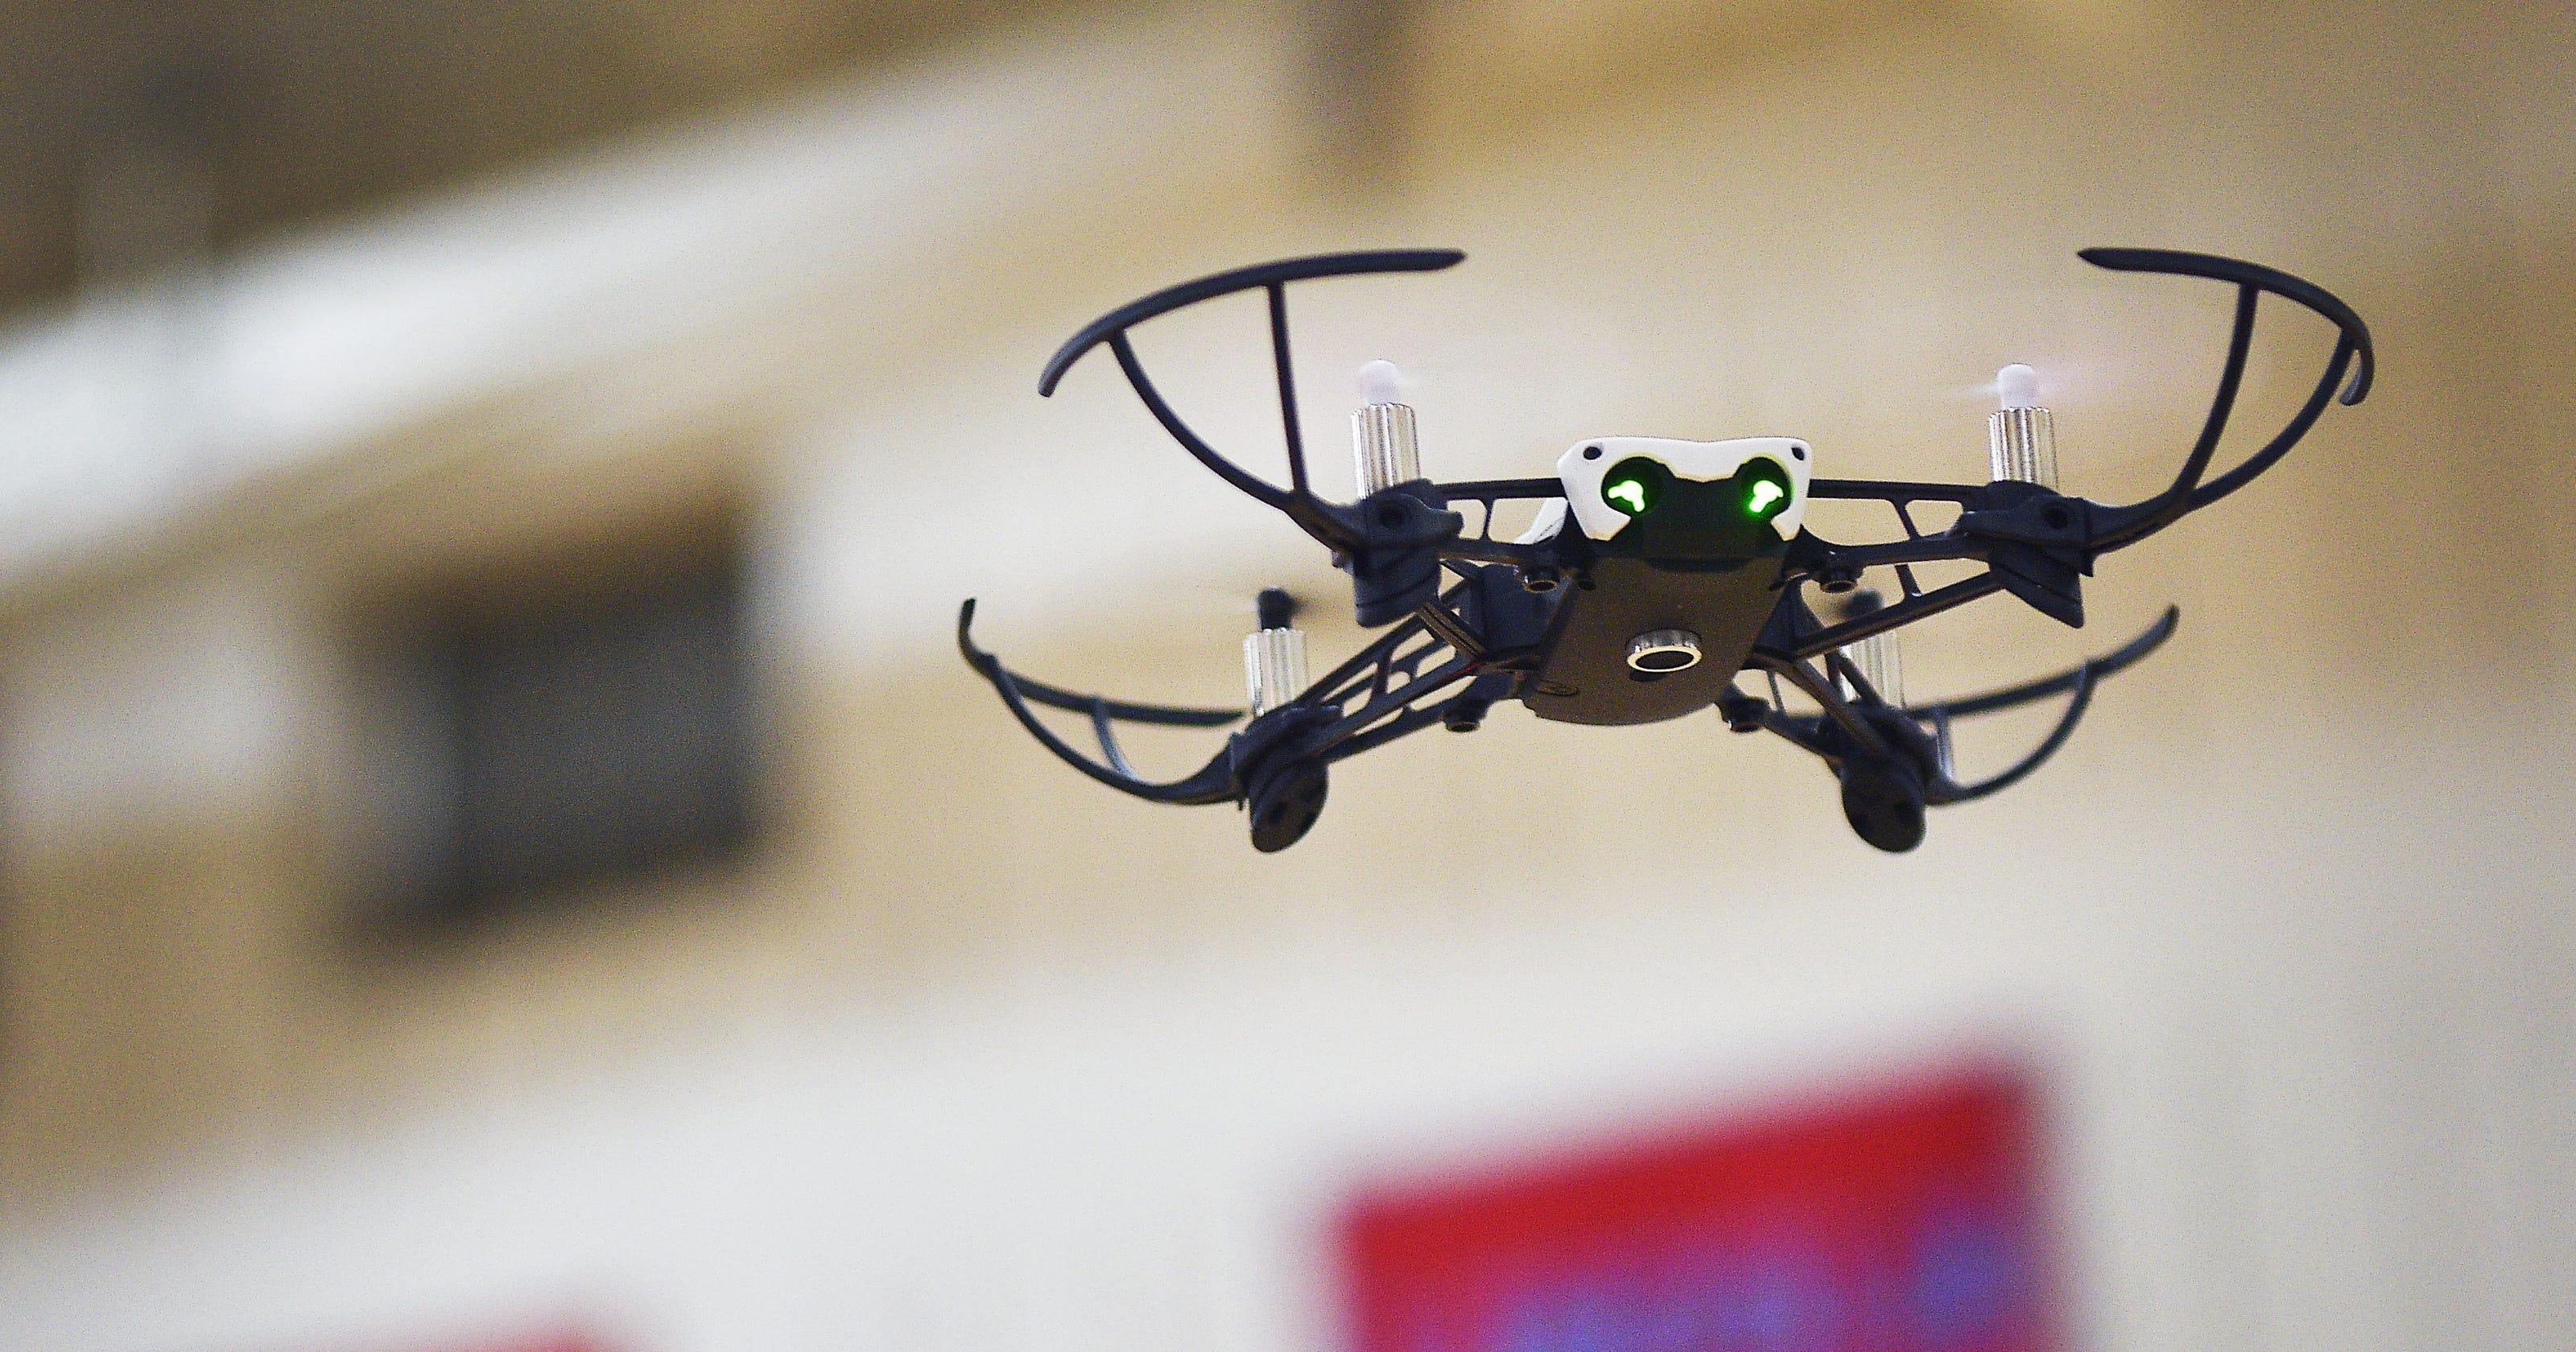 Council moves to strike drone regulations that clash with FAA